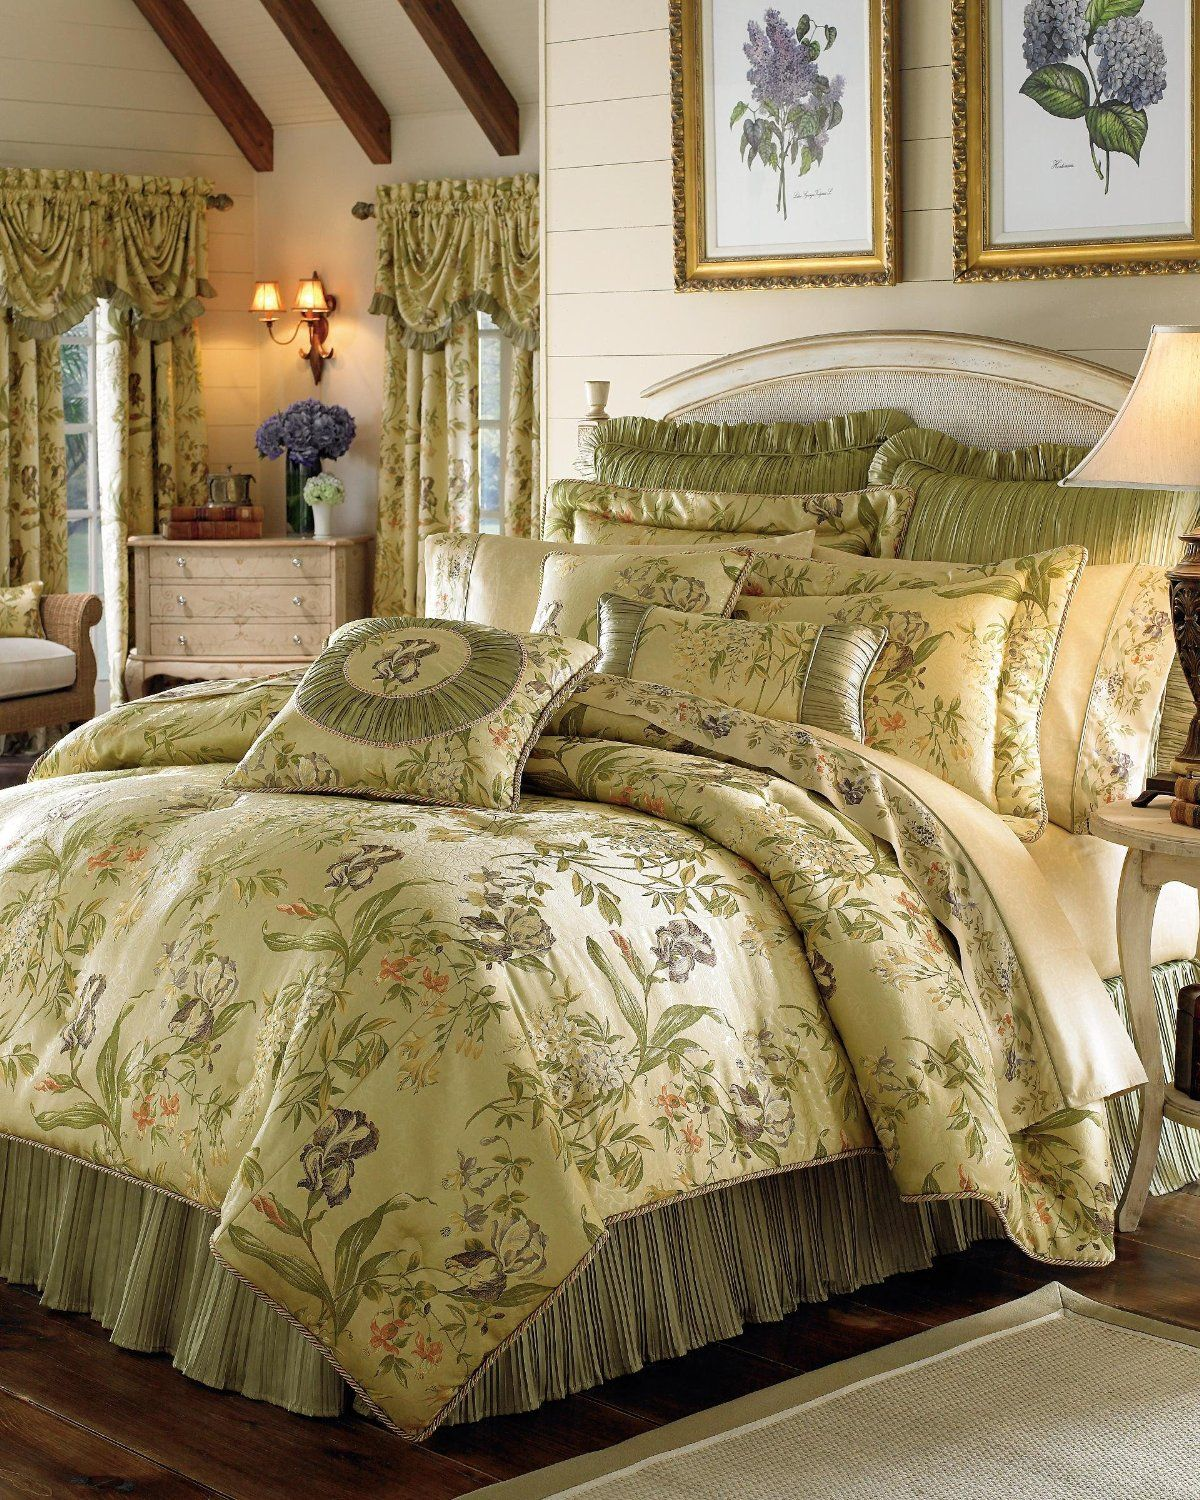 Victorian Bedding Victorian Bedding Ensembles Opulence And Luxury Fit For A Queen